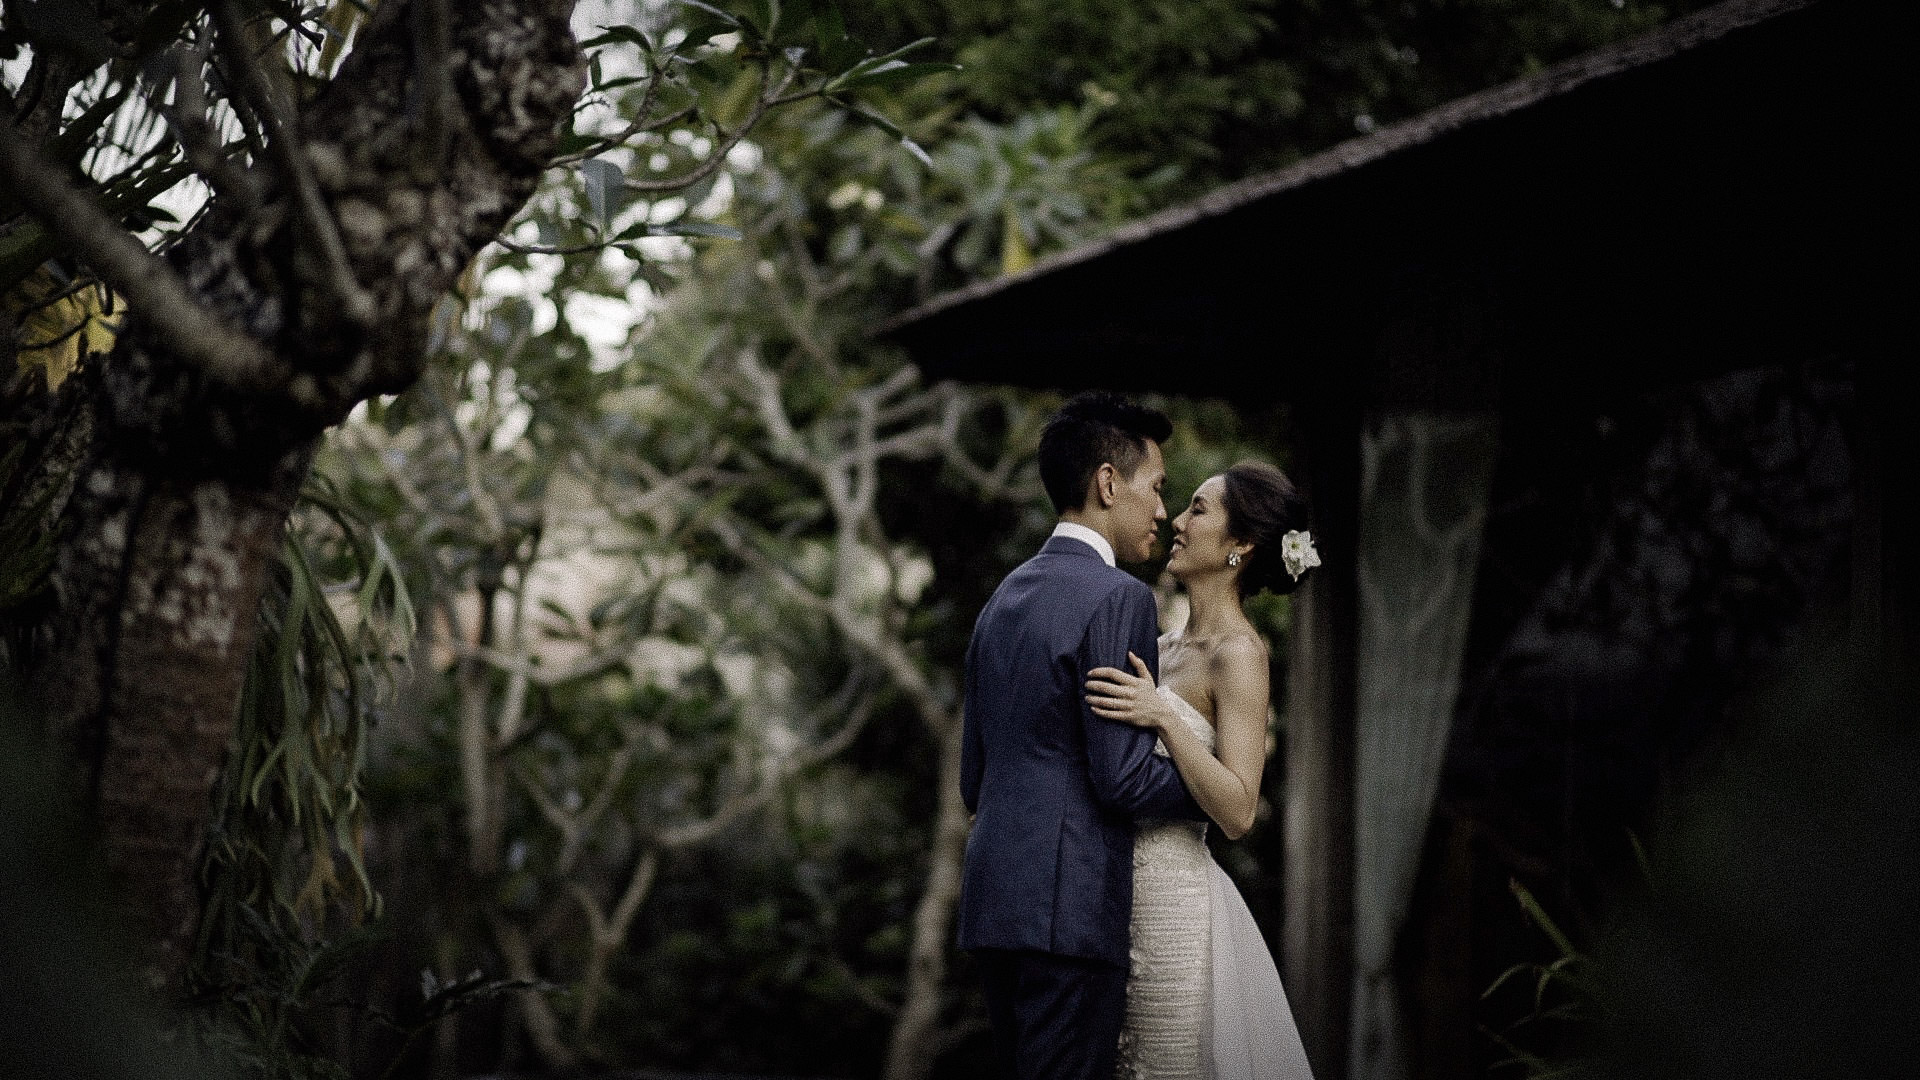 A freeze frame from one of my favourite Bali Wedding Videos. A young newly web couple kiss outside their wedding venue.